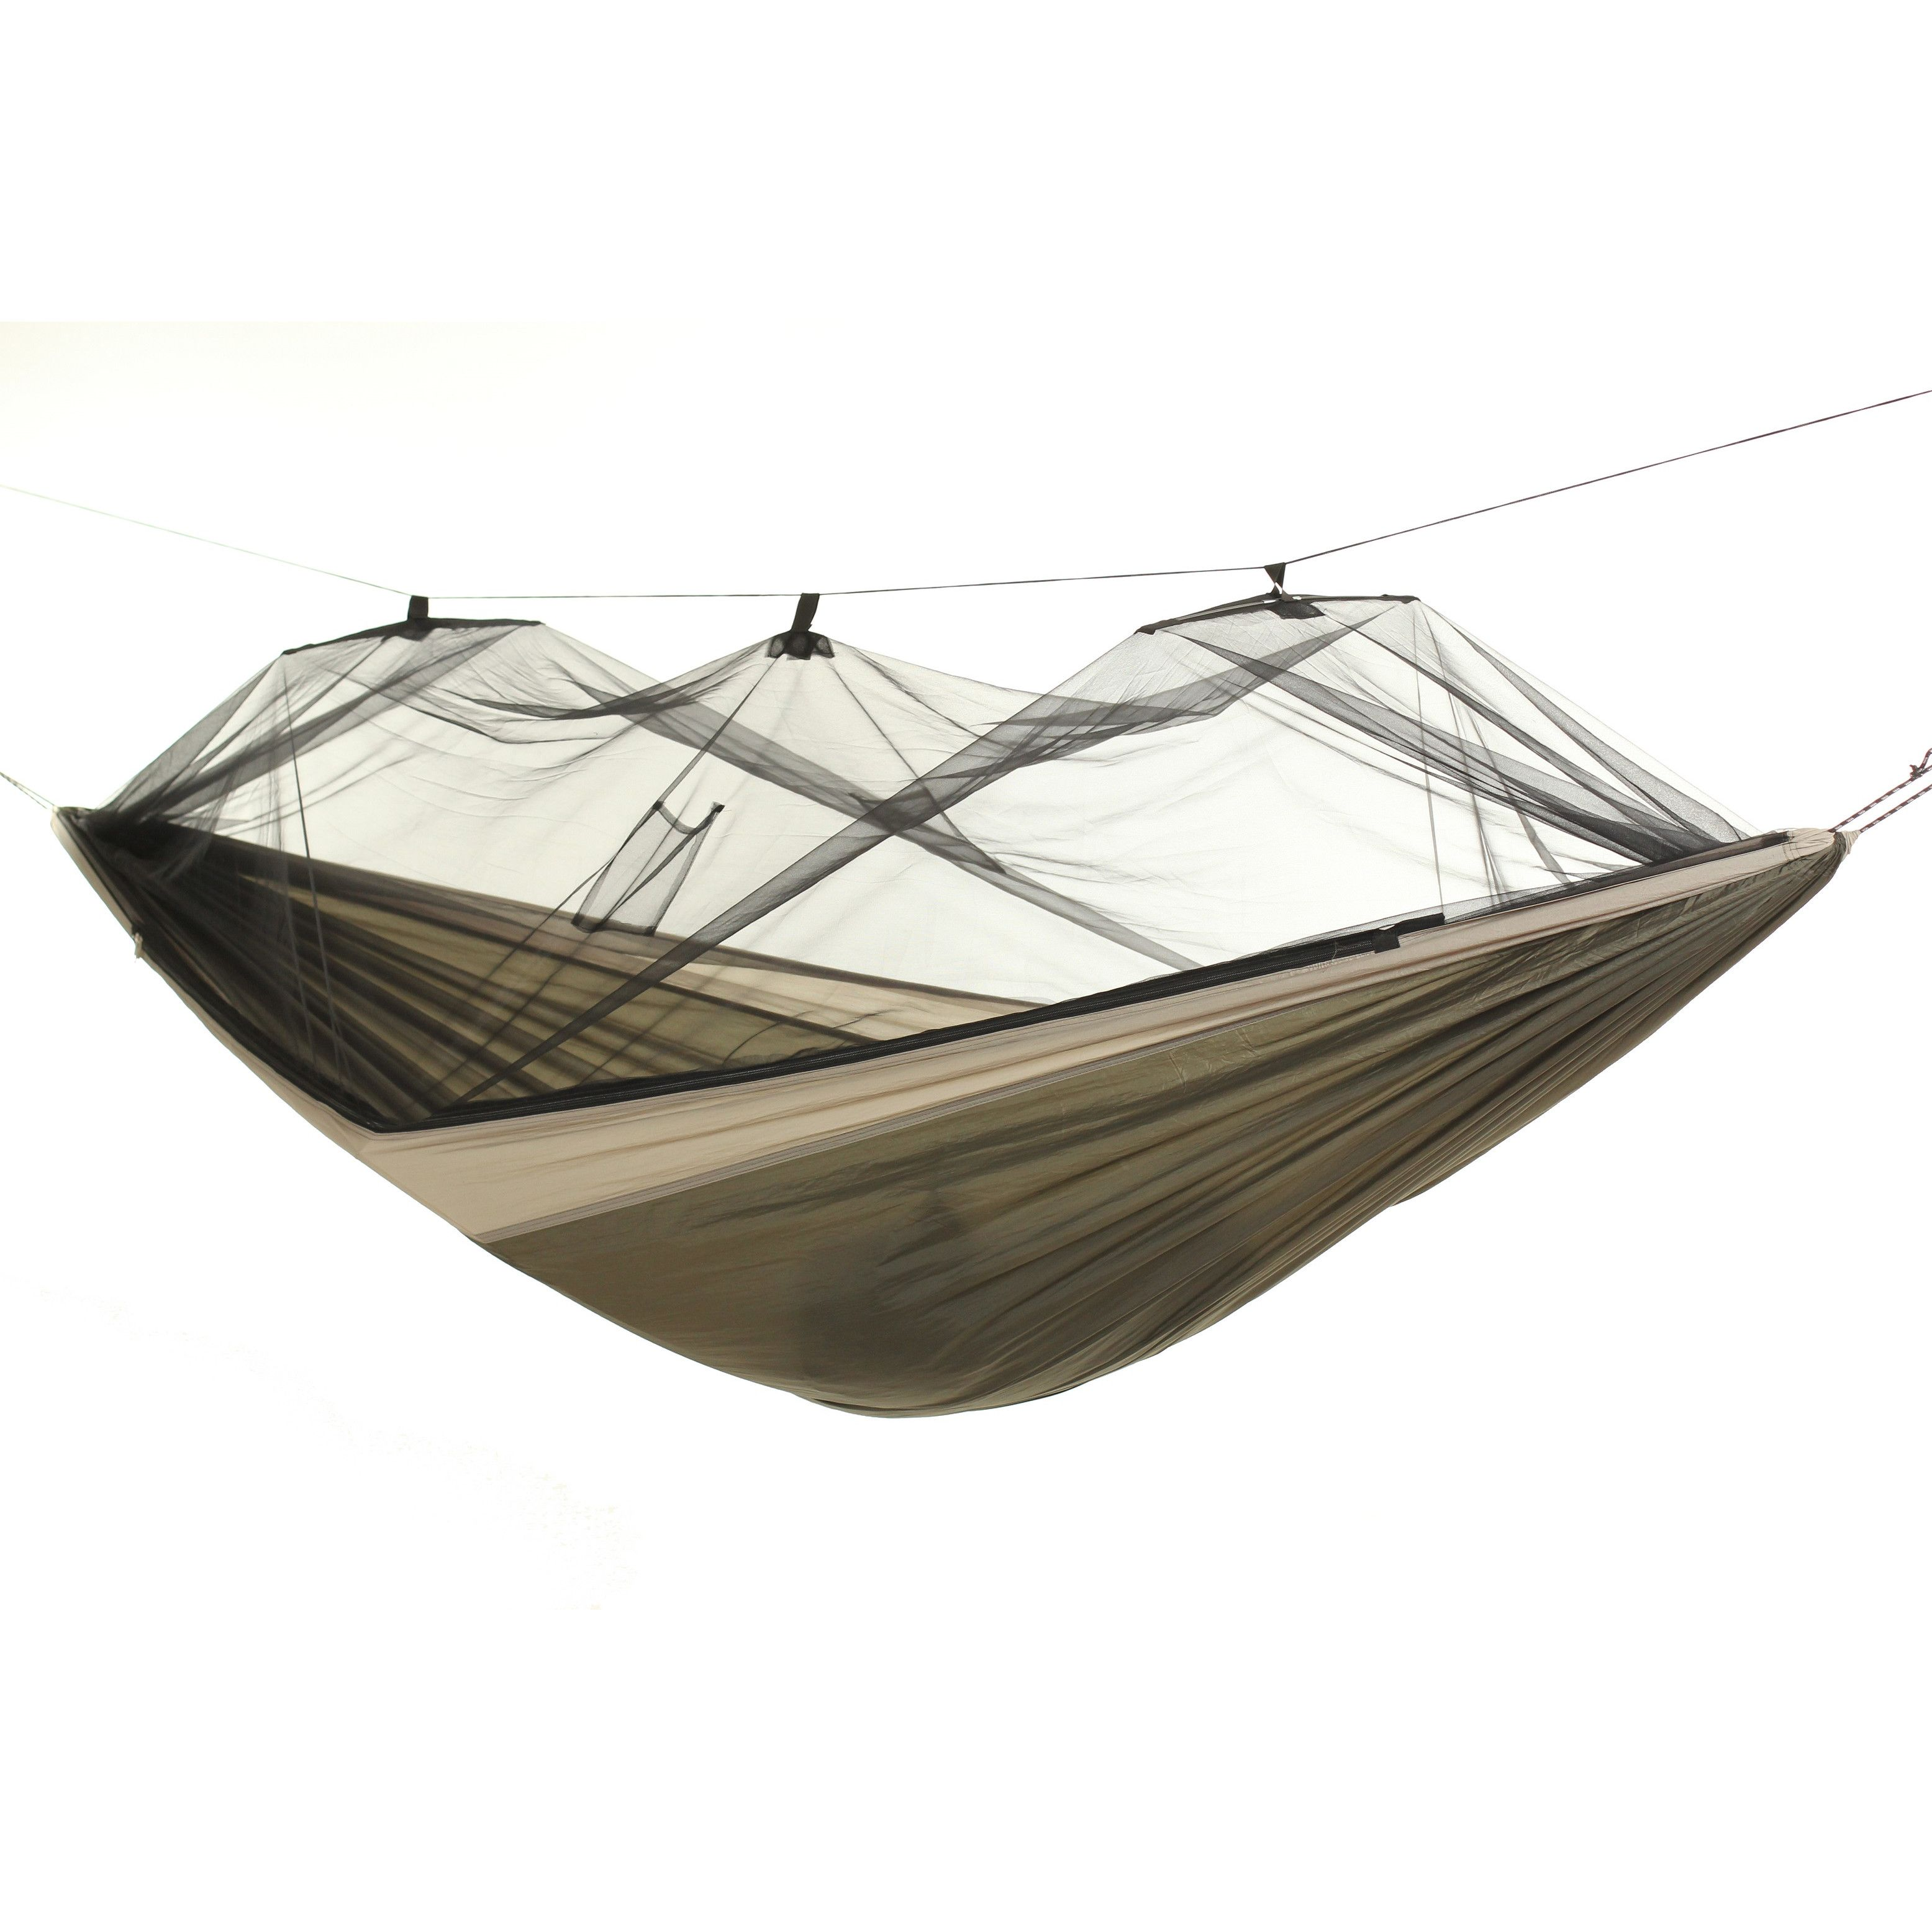 ideal as a tent replacement our mosquito   hammock is lightweight extremely  pact and can be taken anywhere  it includes mosquito  ting to ensure a     byer of maine moskito kakoon nylon camping hammock   decor      rh   pinterest